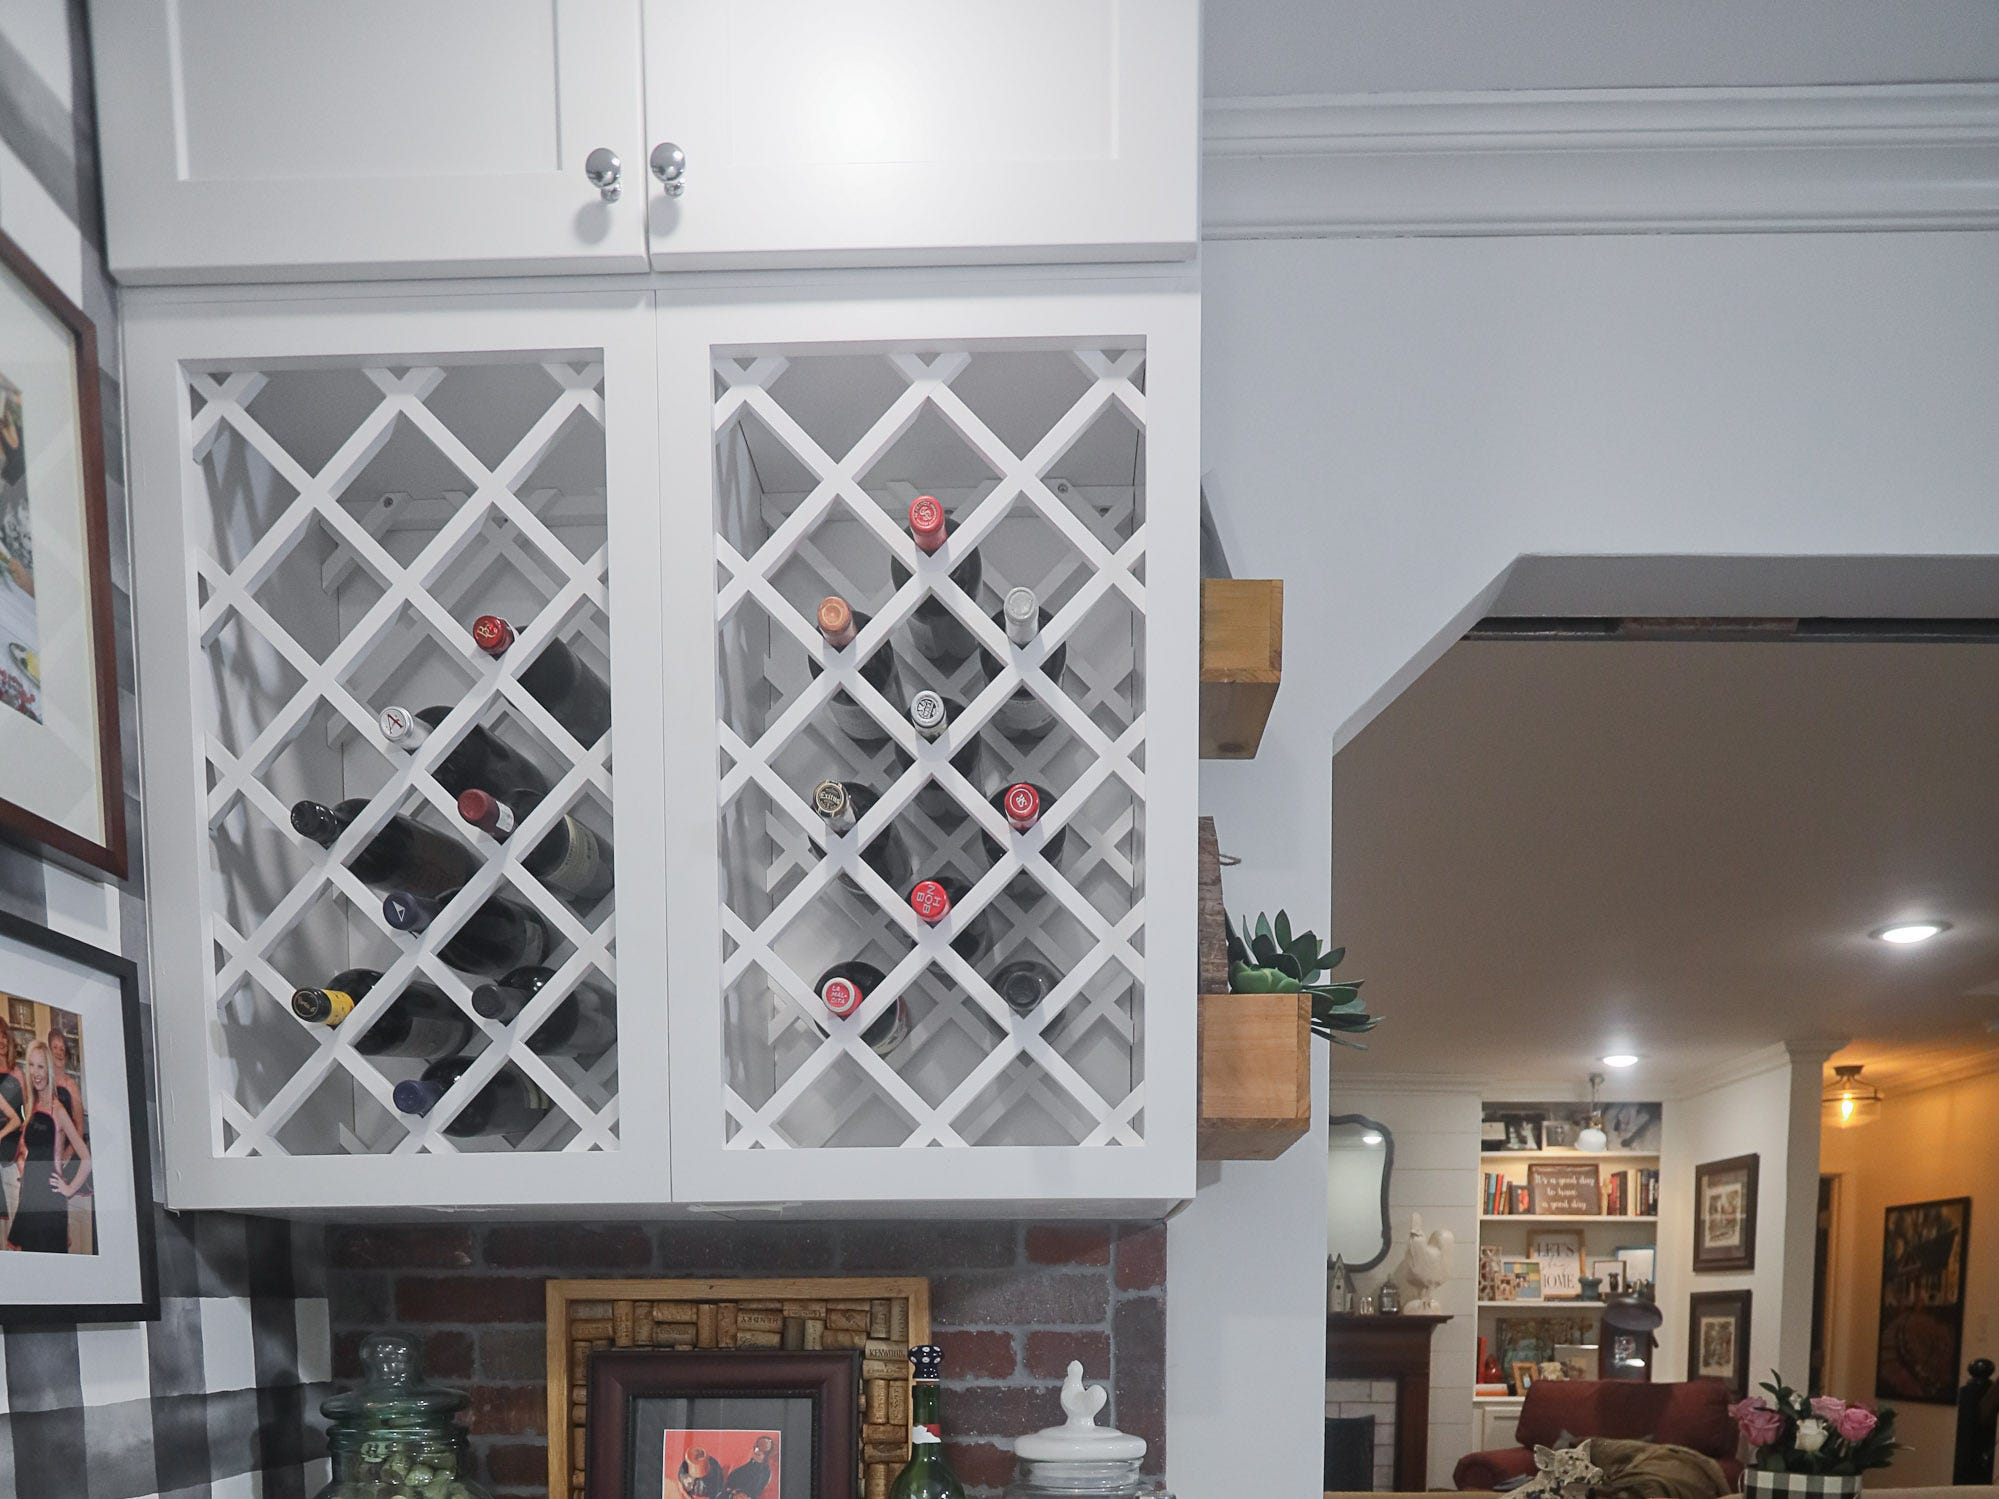 A wine rack and chiller at the home of Kelli Lorenzen in Louisville, KY. Feb. 12, 2019